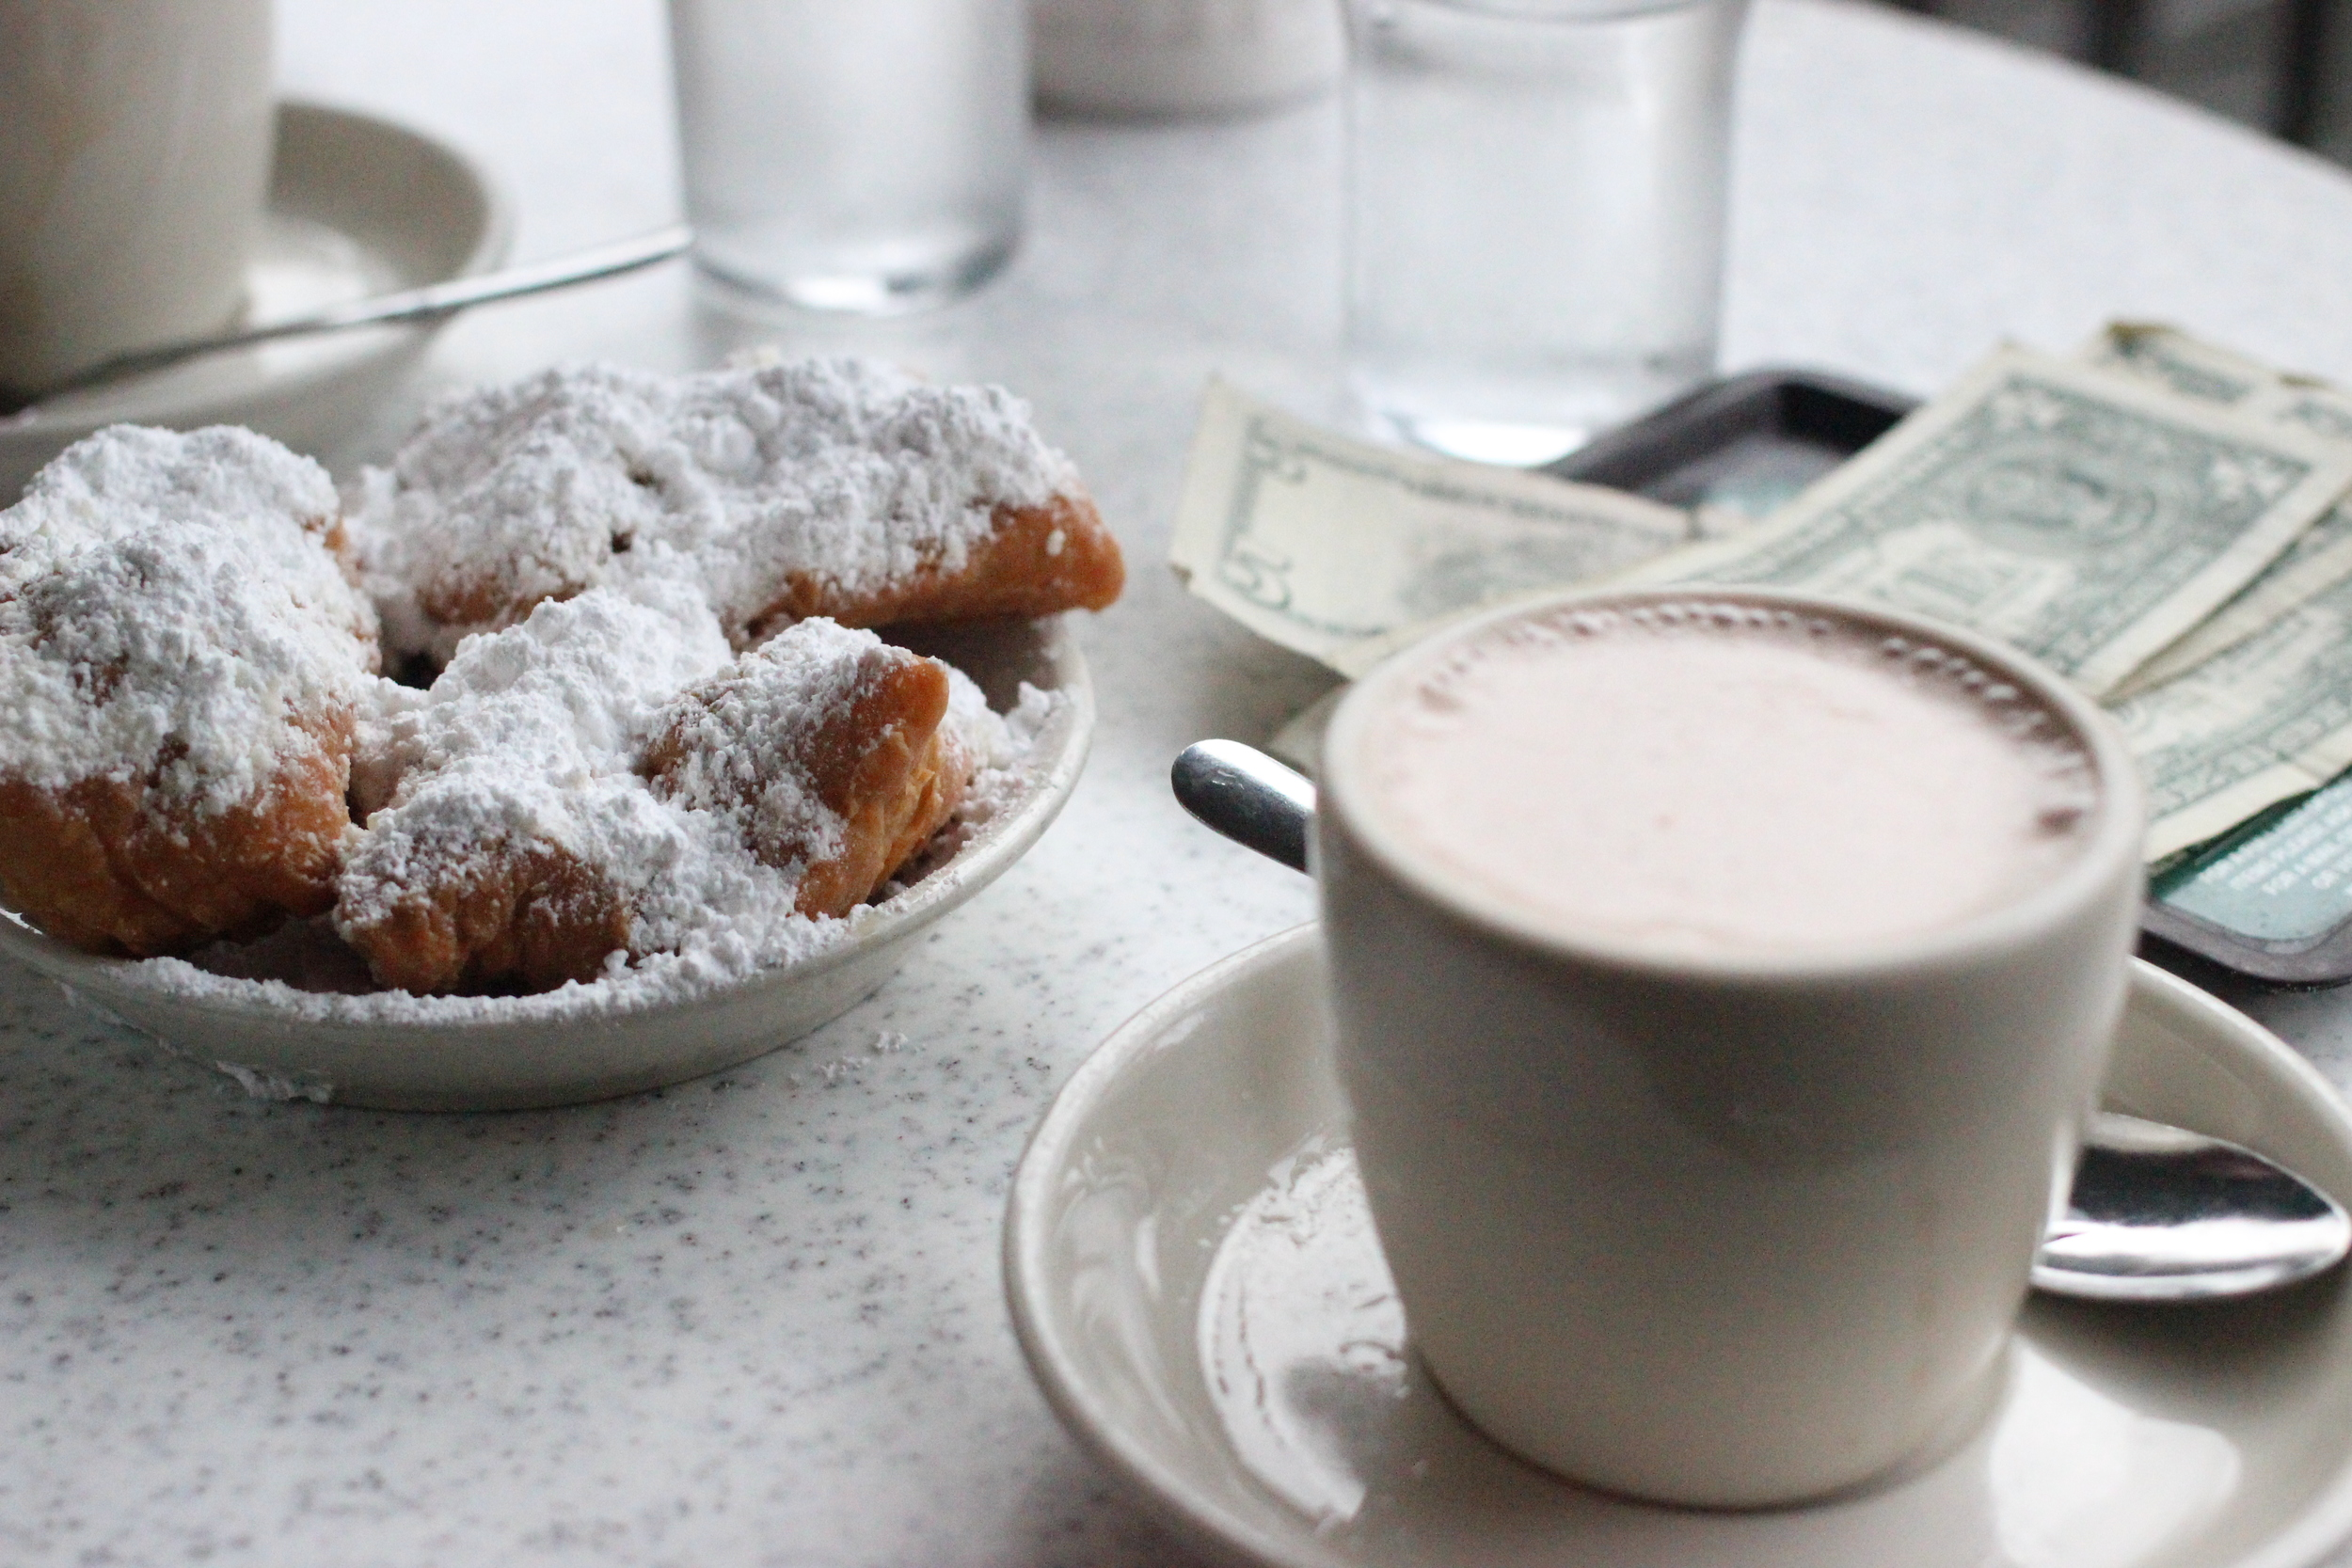 Beignets & hot chocolate